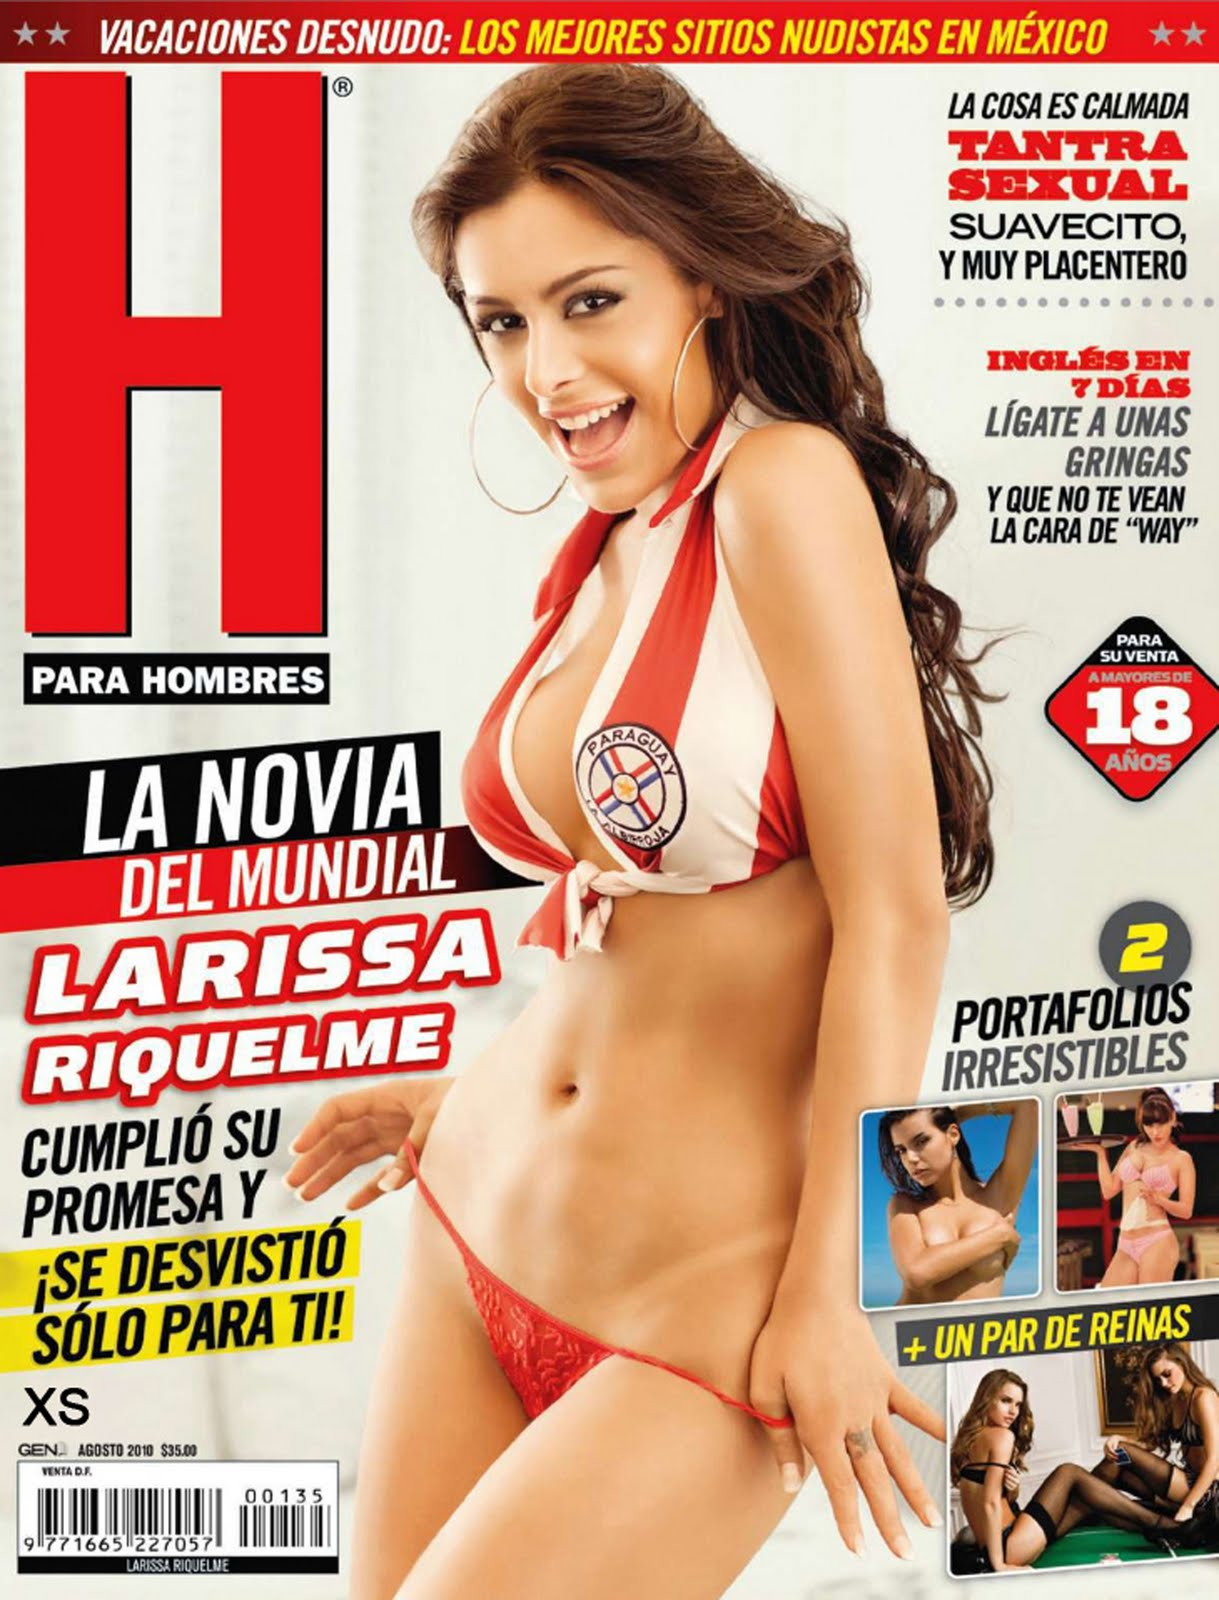 Larissa Riquelme, gallery model